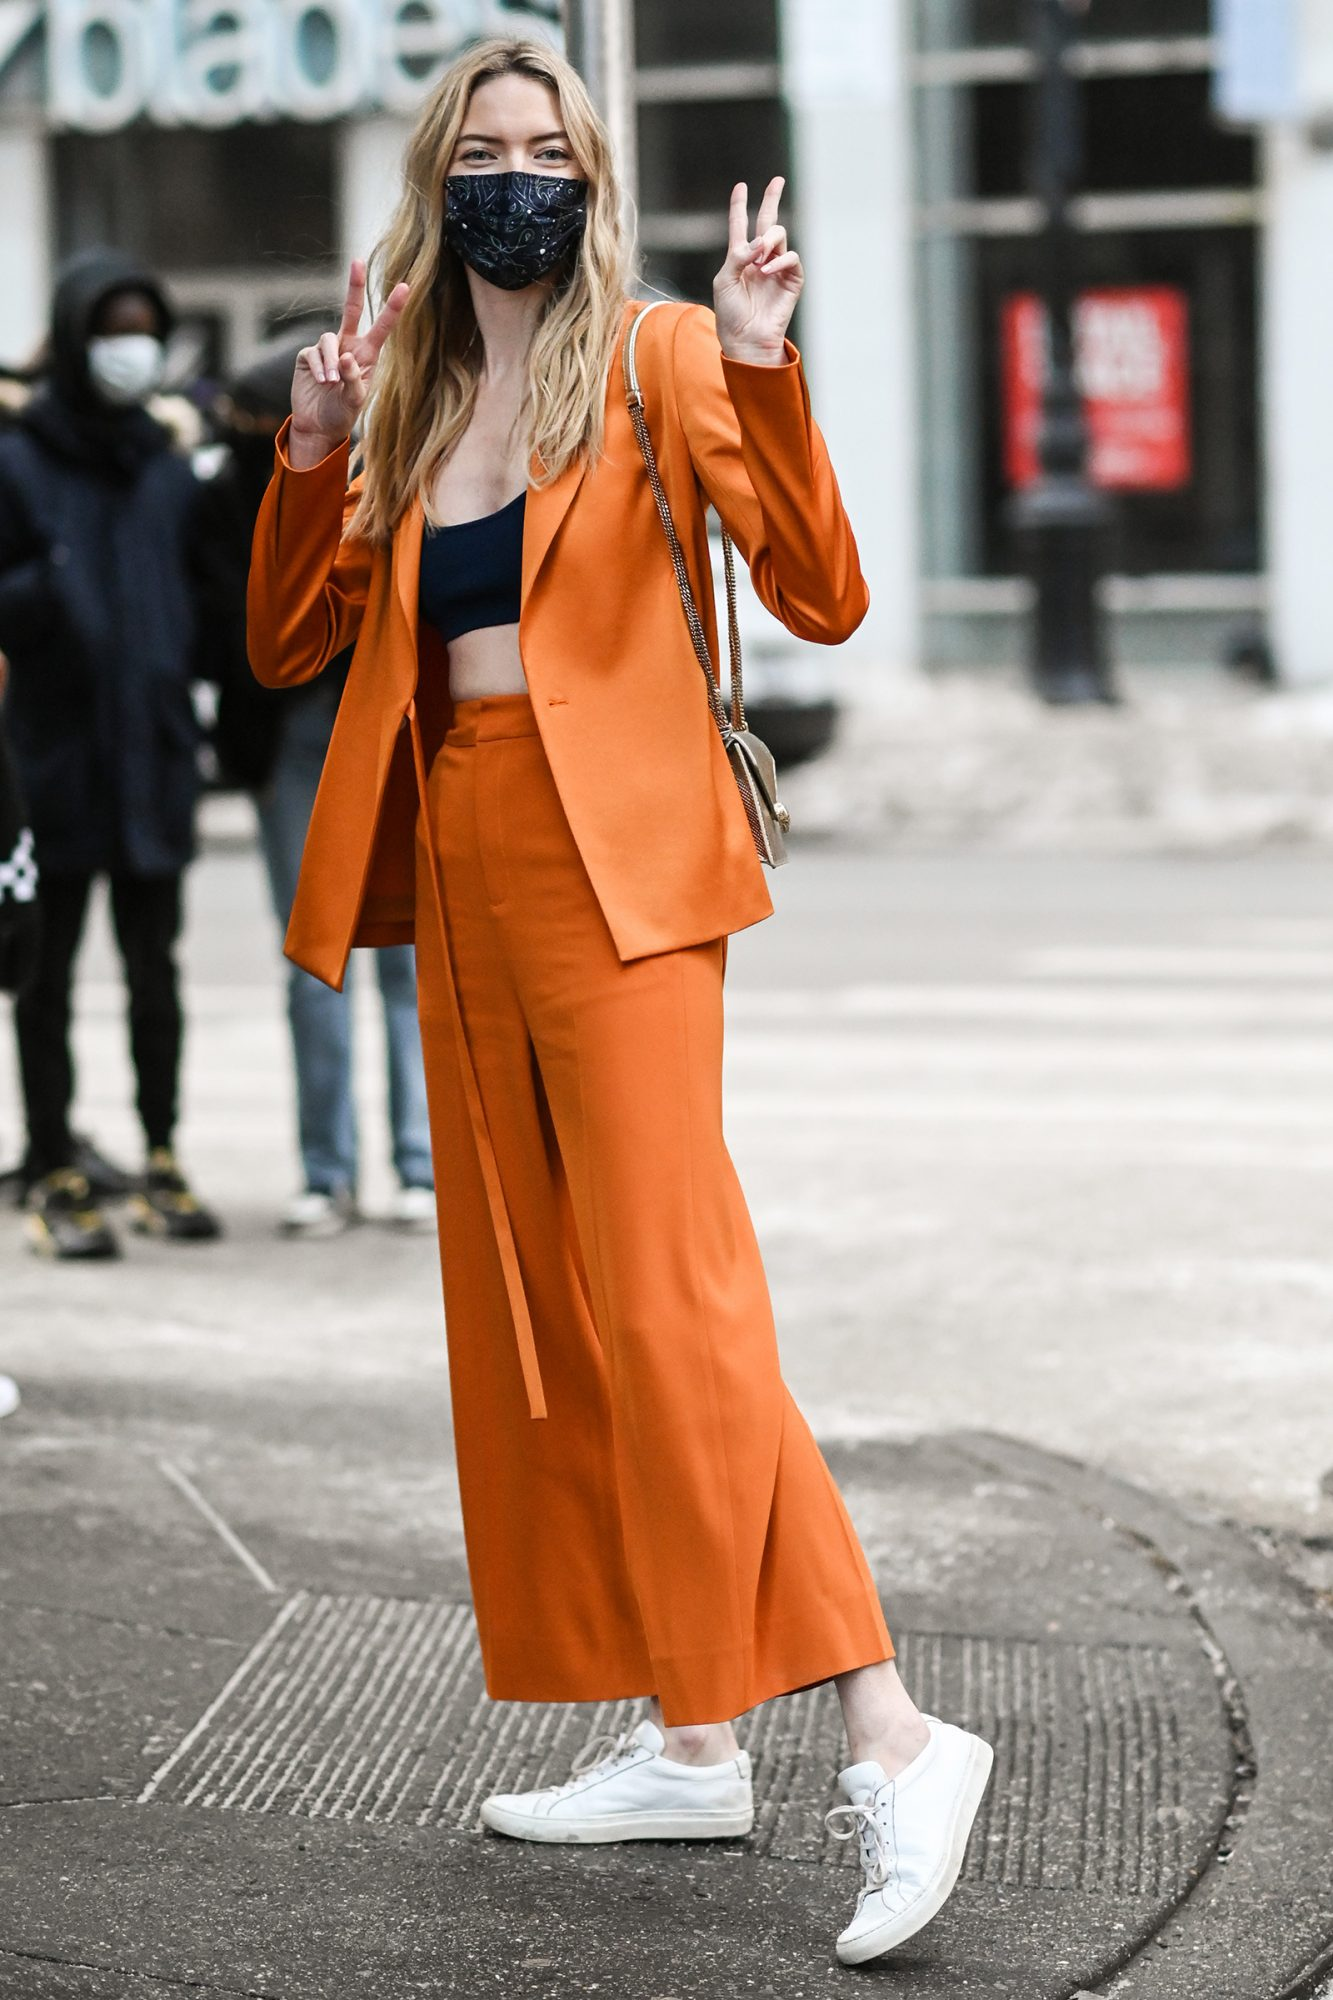 Martha Hunt is seen wearing an orange Jason Wu suit outside the Jason Wu show during New York Fashion Week F/W21 on February 14, 2021 in New York City